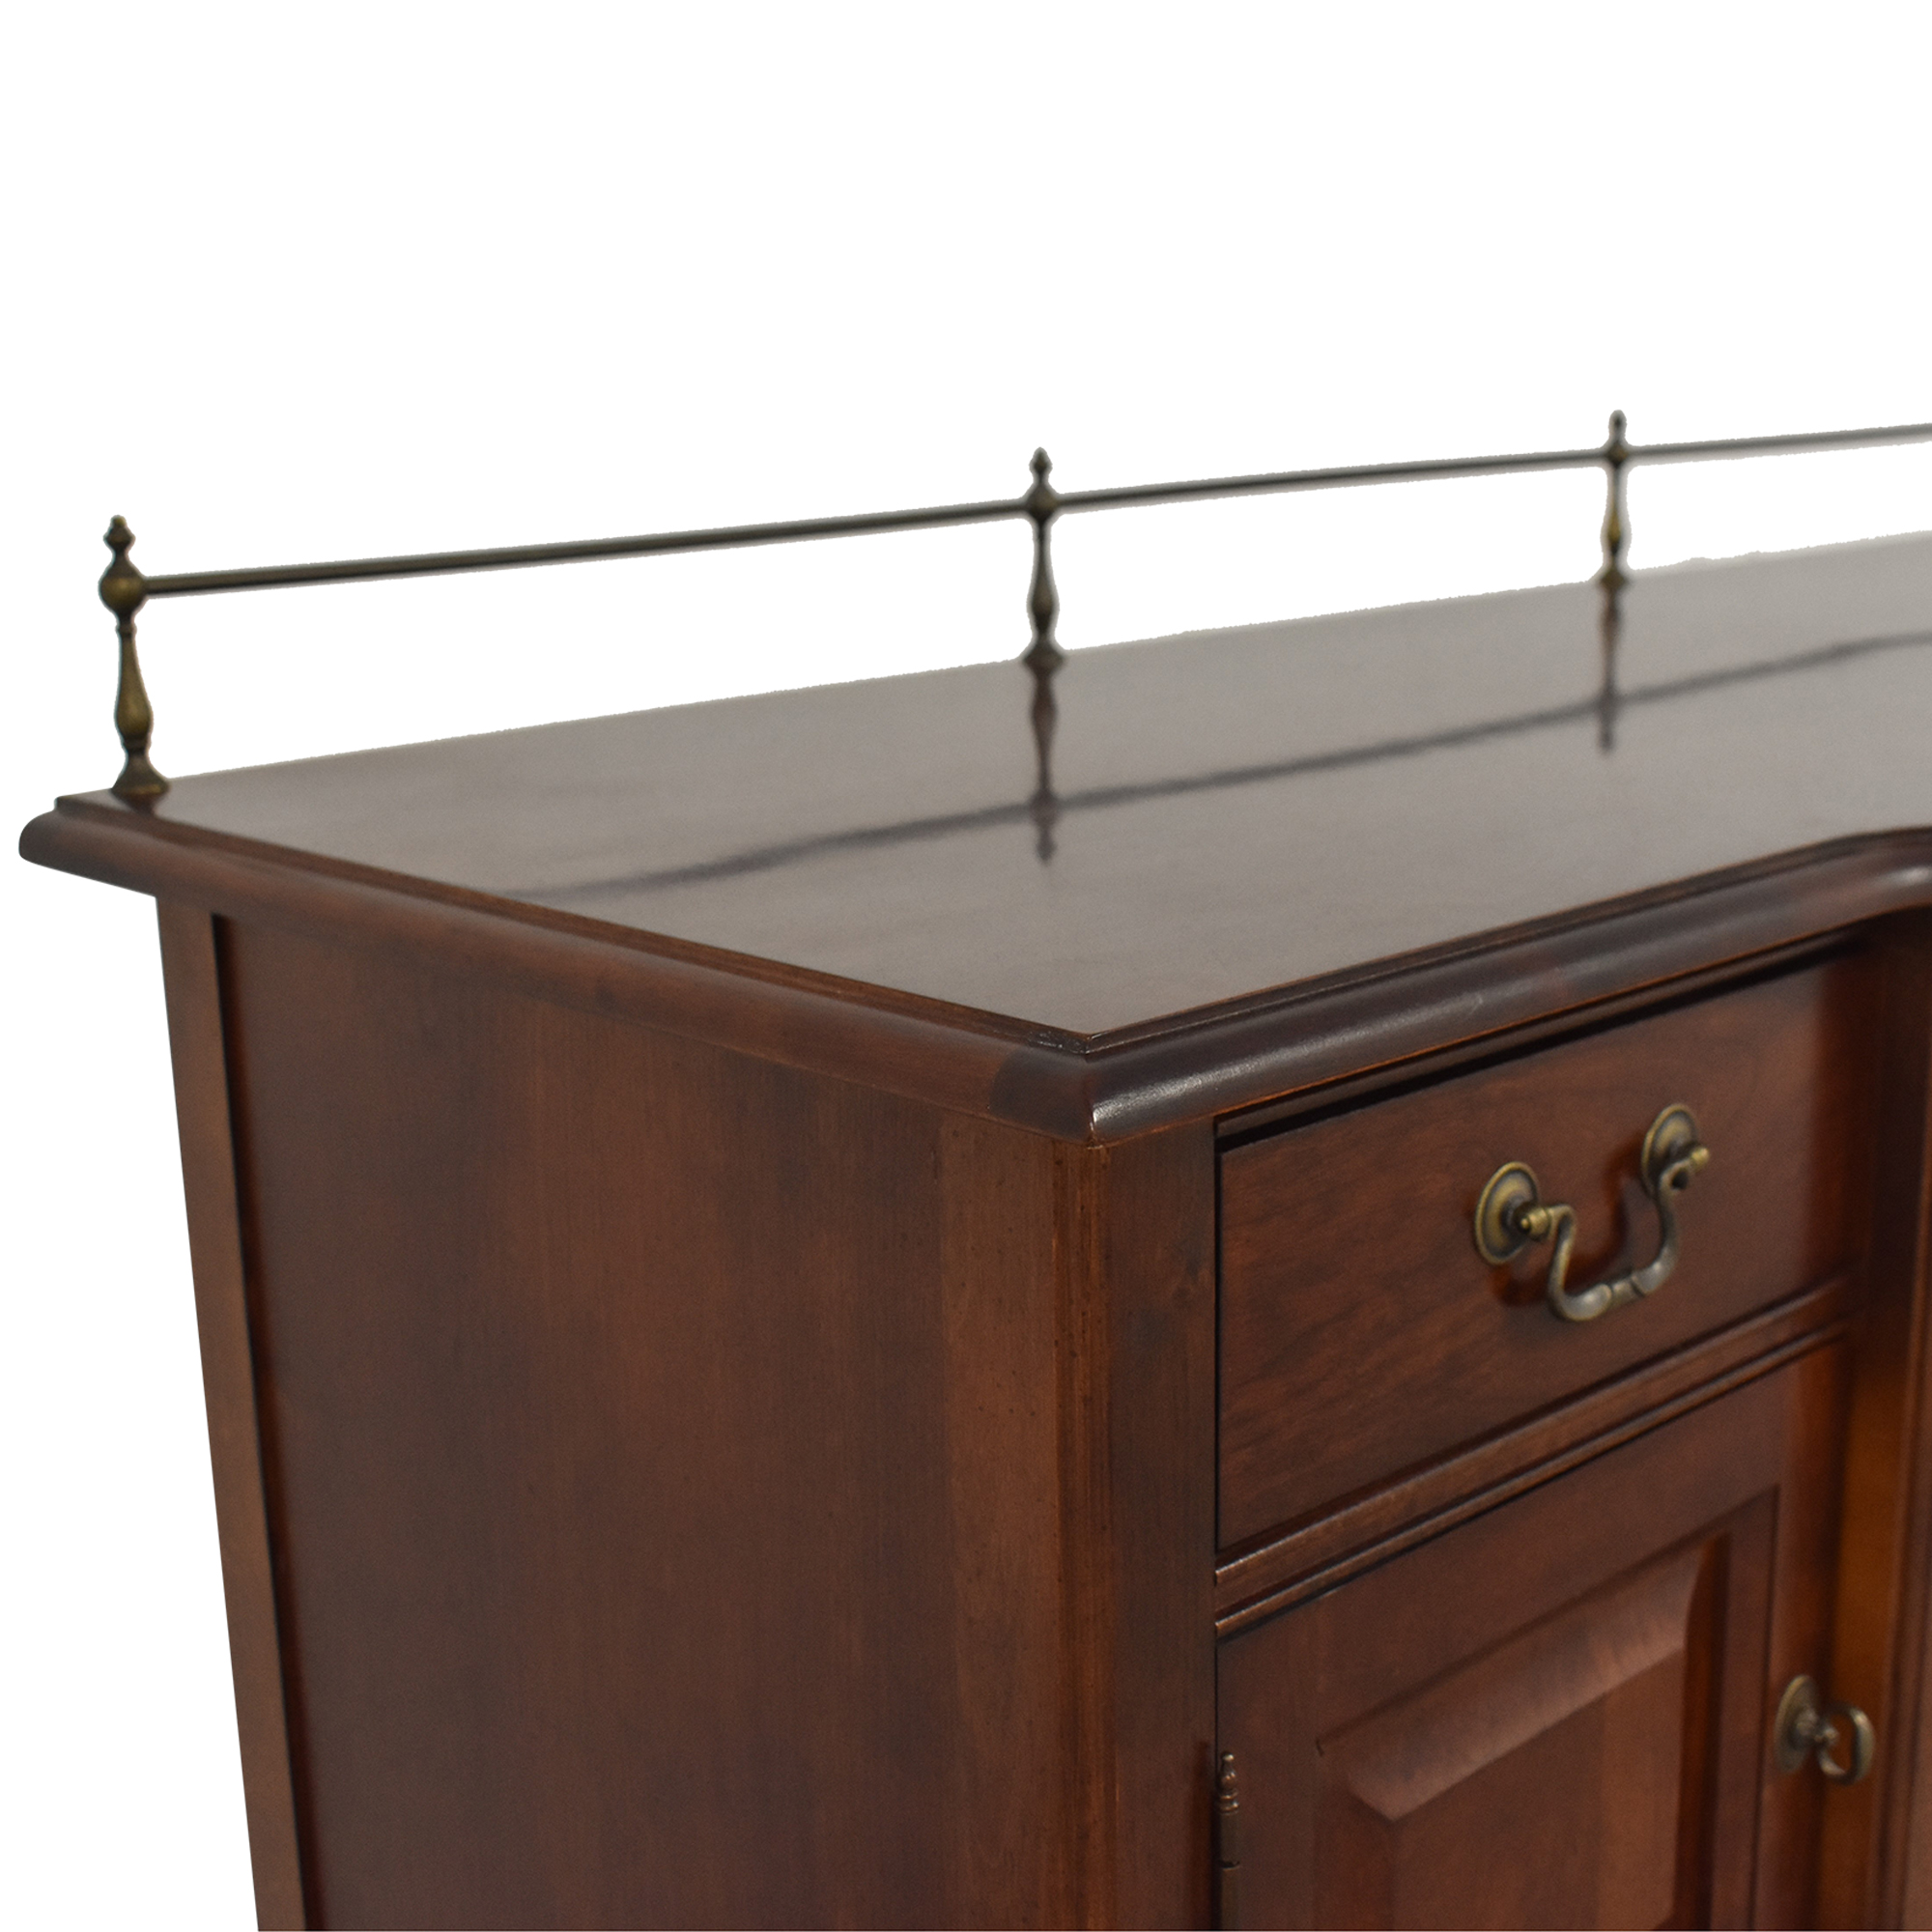 Broyhill Furniture Broyhill Premier Sheraton Sideboard coupon